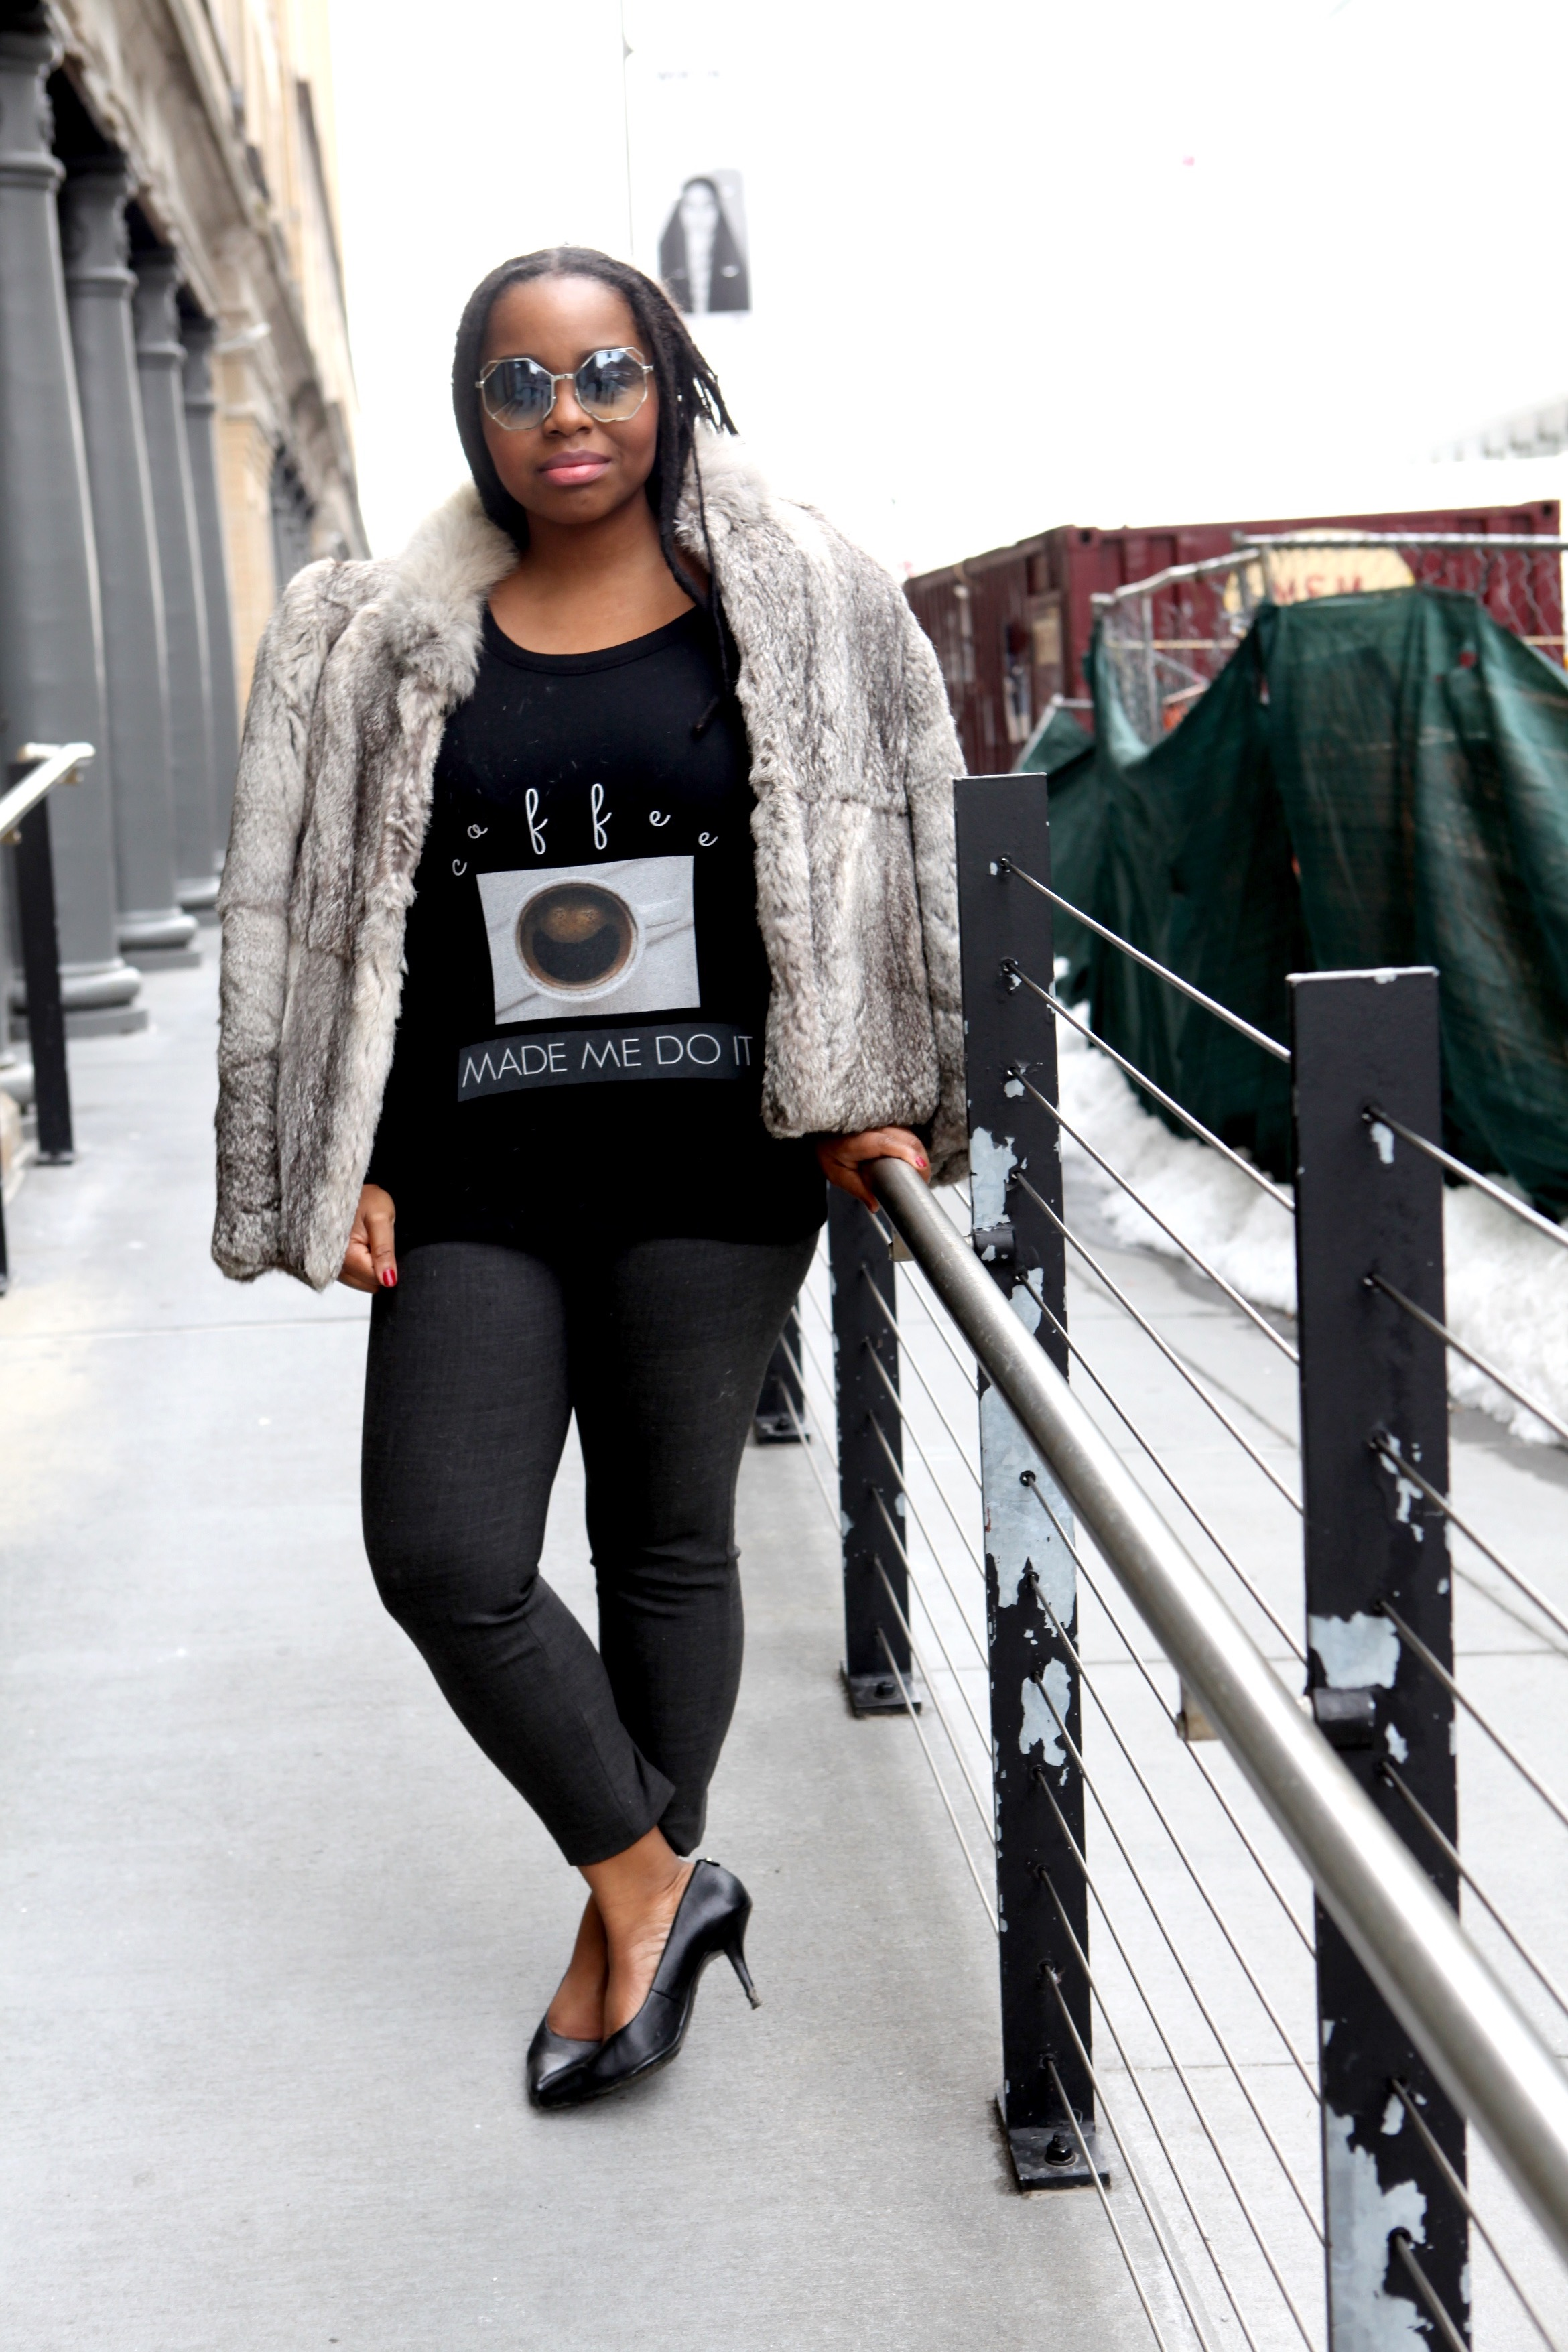 Faux fur coat, Sweatshirt:  1214 By. Candy Washingto n, Sunglasses:  LoveDay31 , Trousers: JCrew, Shoes:  Michael Kors